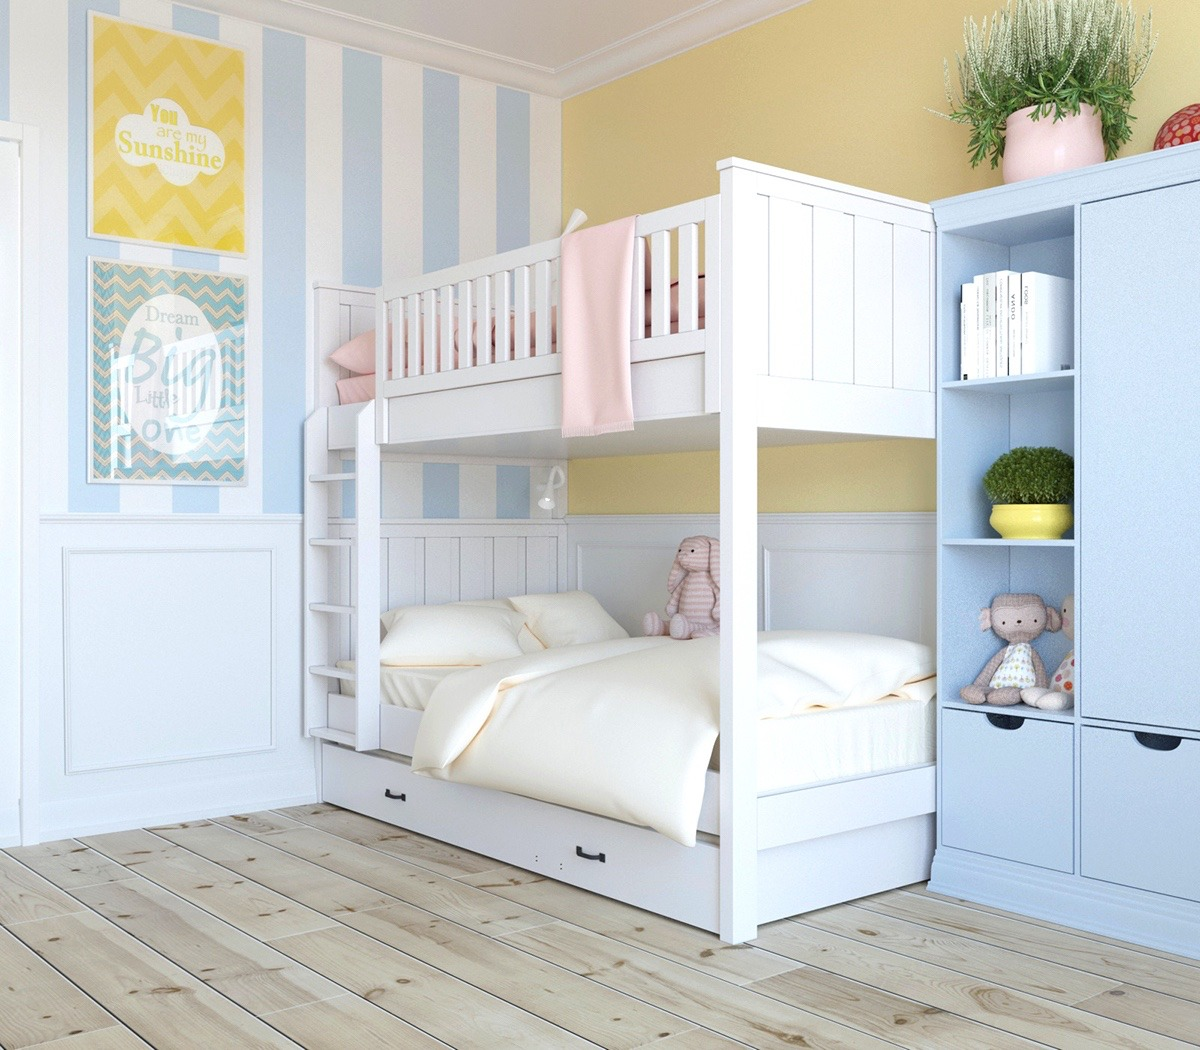 Baby Blue Bedroom: 4 Interiors That Harmonise Clutter Using Scandinavian